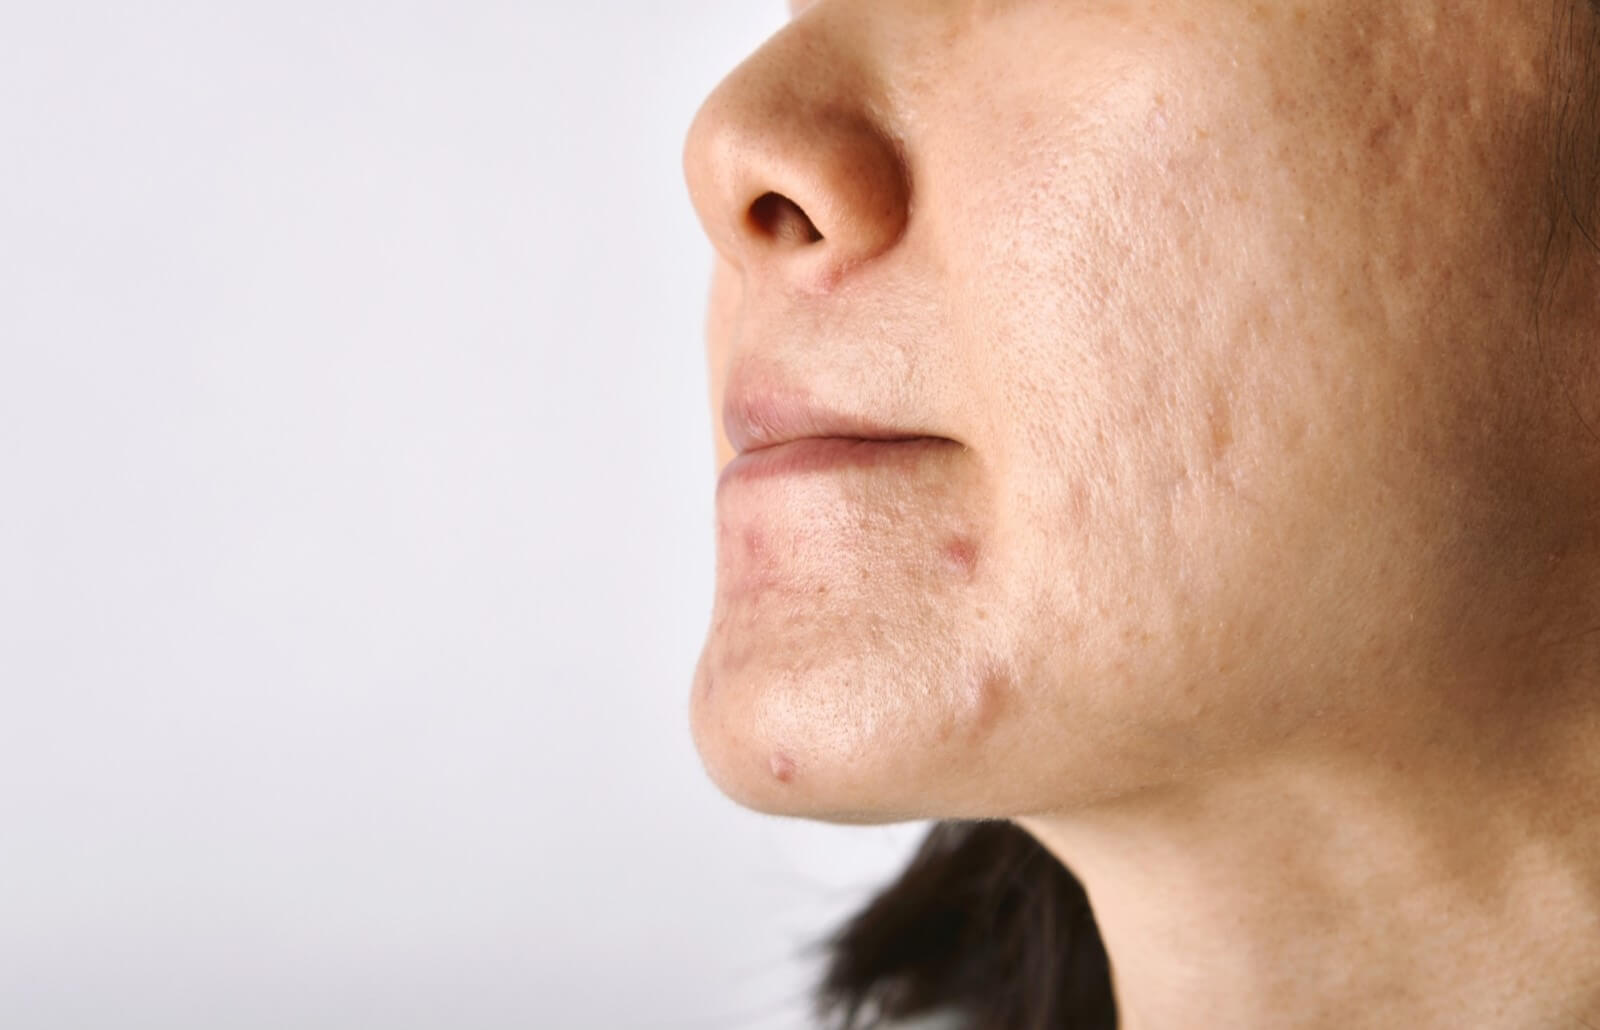 Acne Scars: How to Rid Yourself of These Battle Wounds